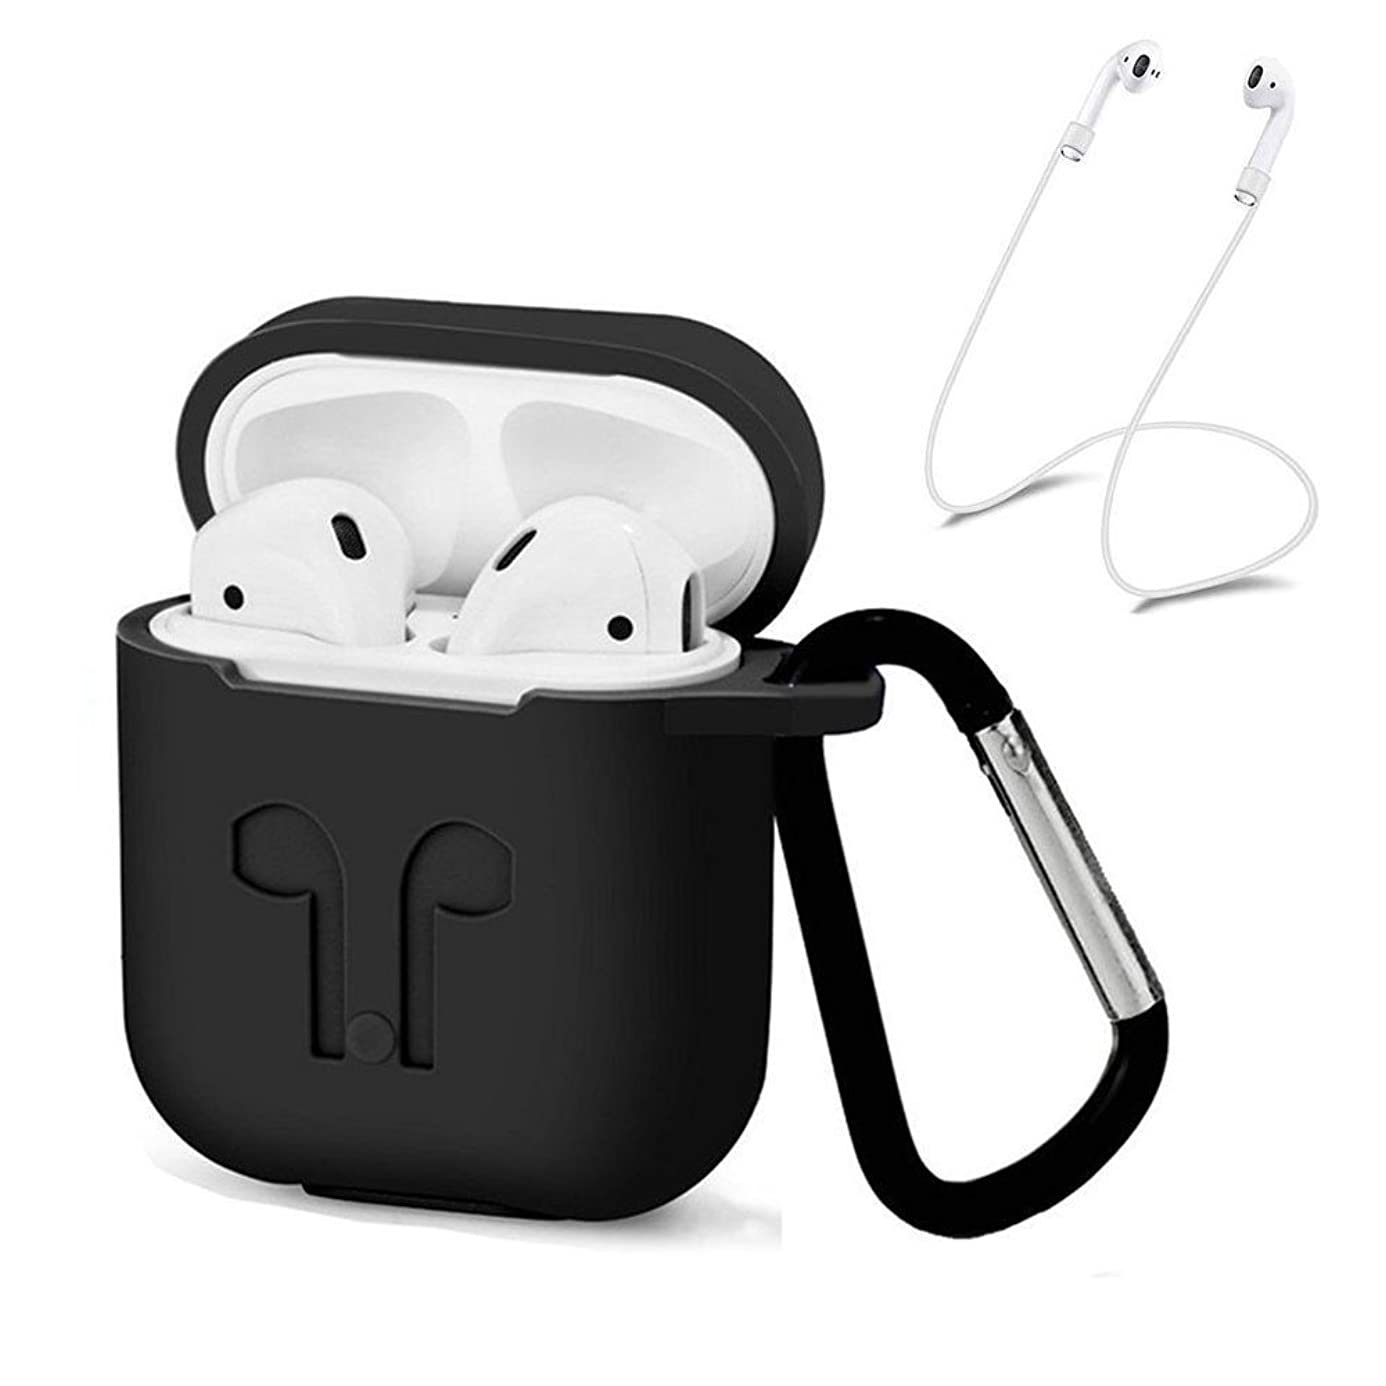 YRD TECH Silicone Blueteeth Wireless Earphone Case for AirPods Protective Cover Skin Accessories for Apple Airpods Charging Box